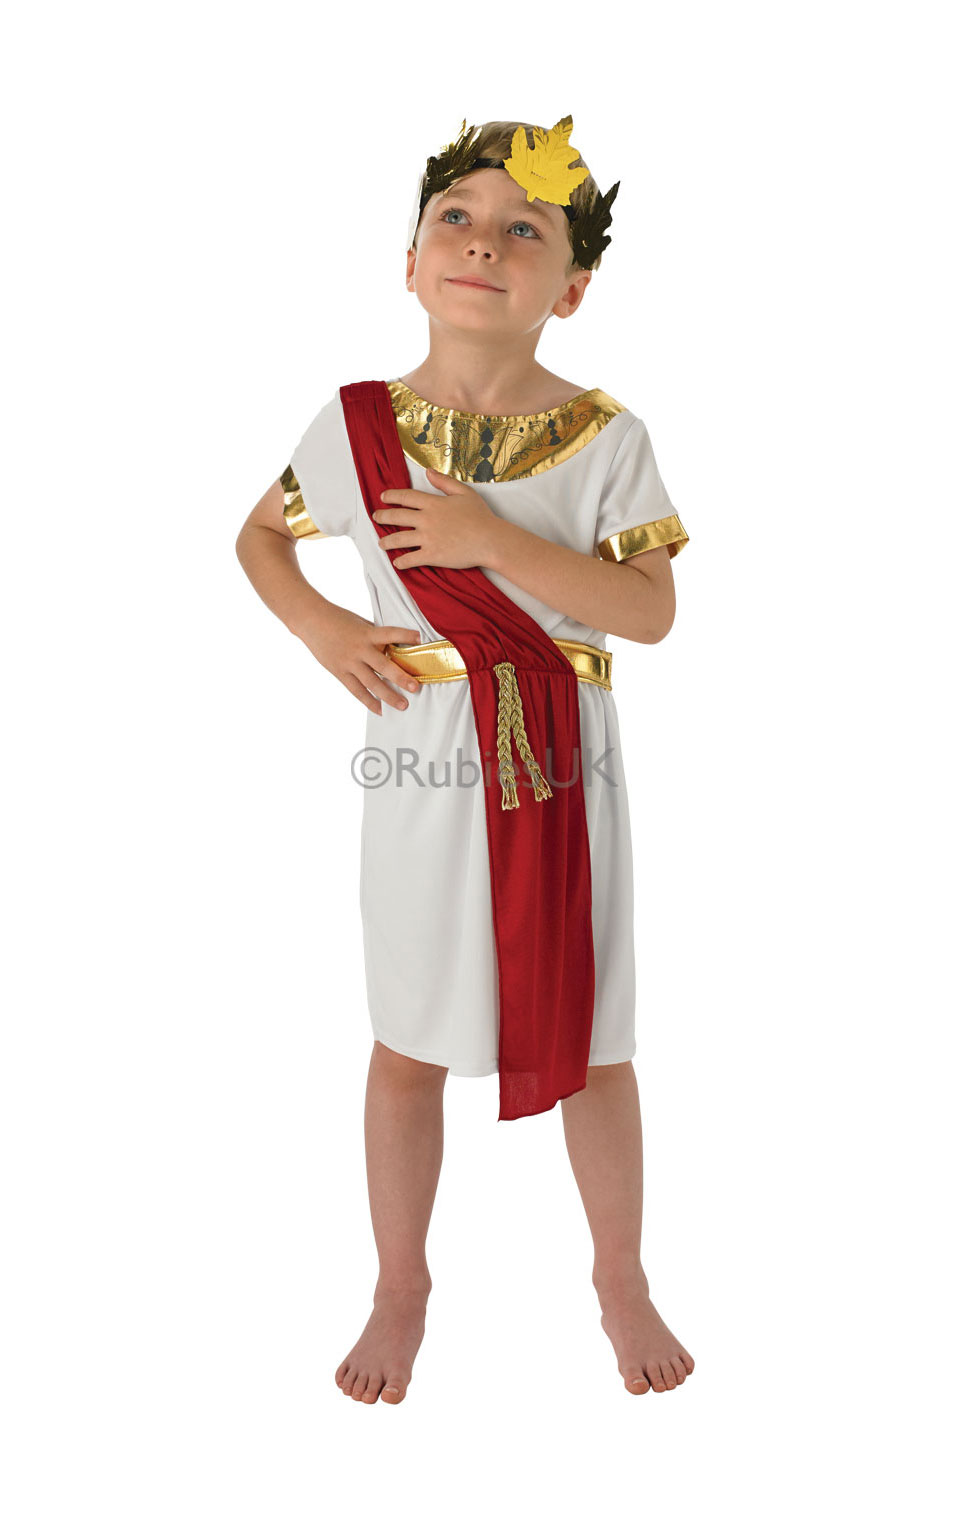 Childrens Girls Fancy Dress Party Book Week Day Roman Princess Costume Outfit